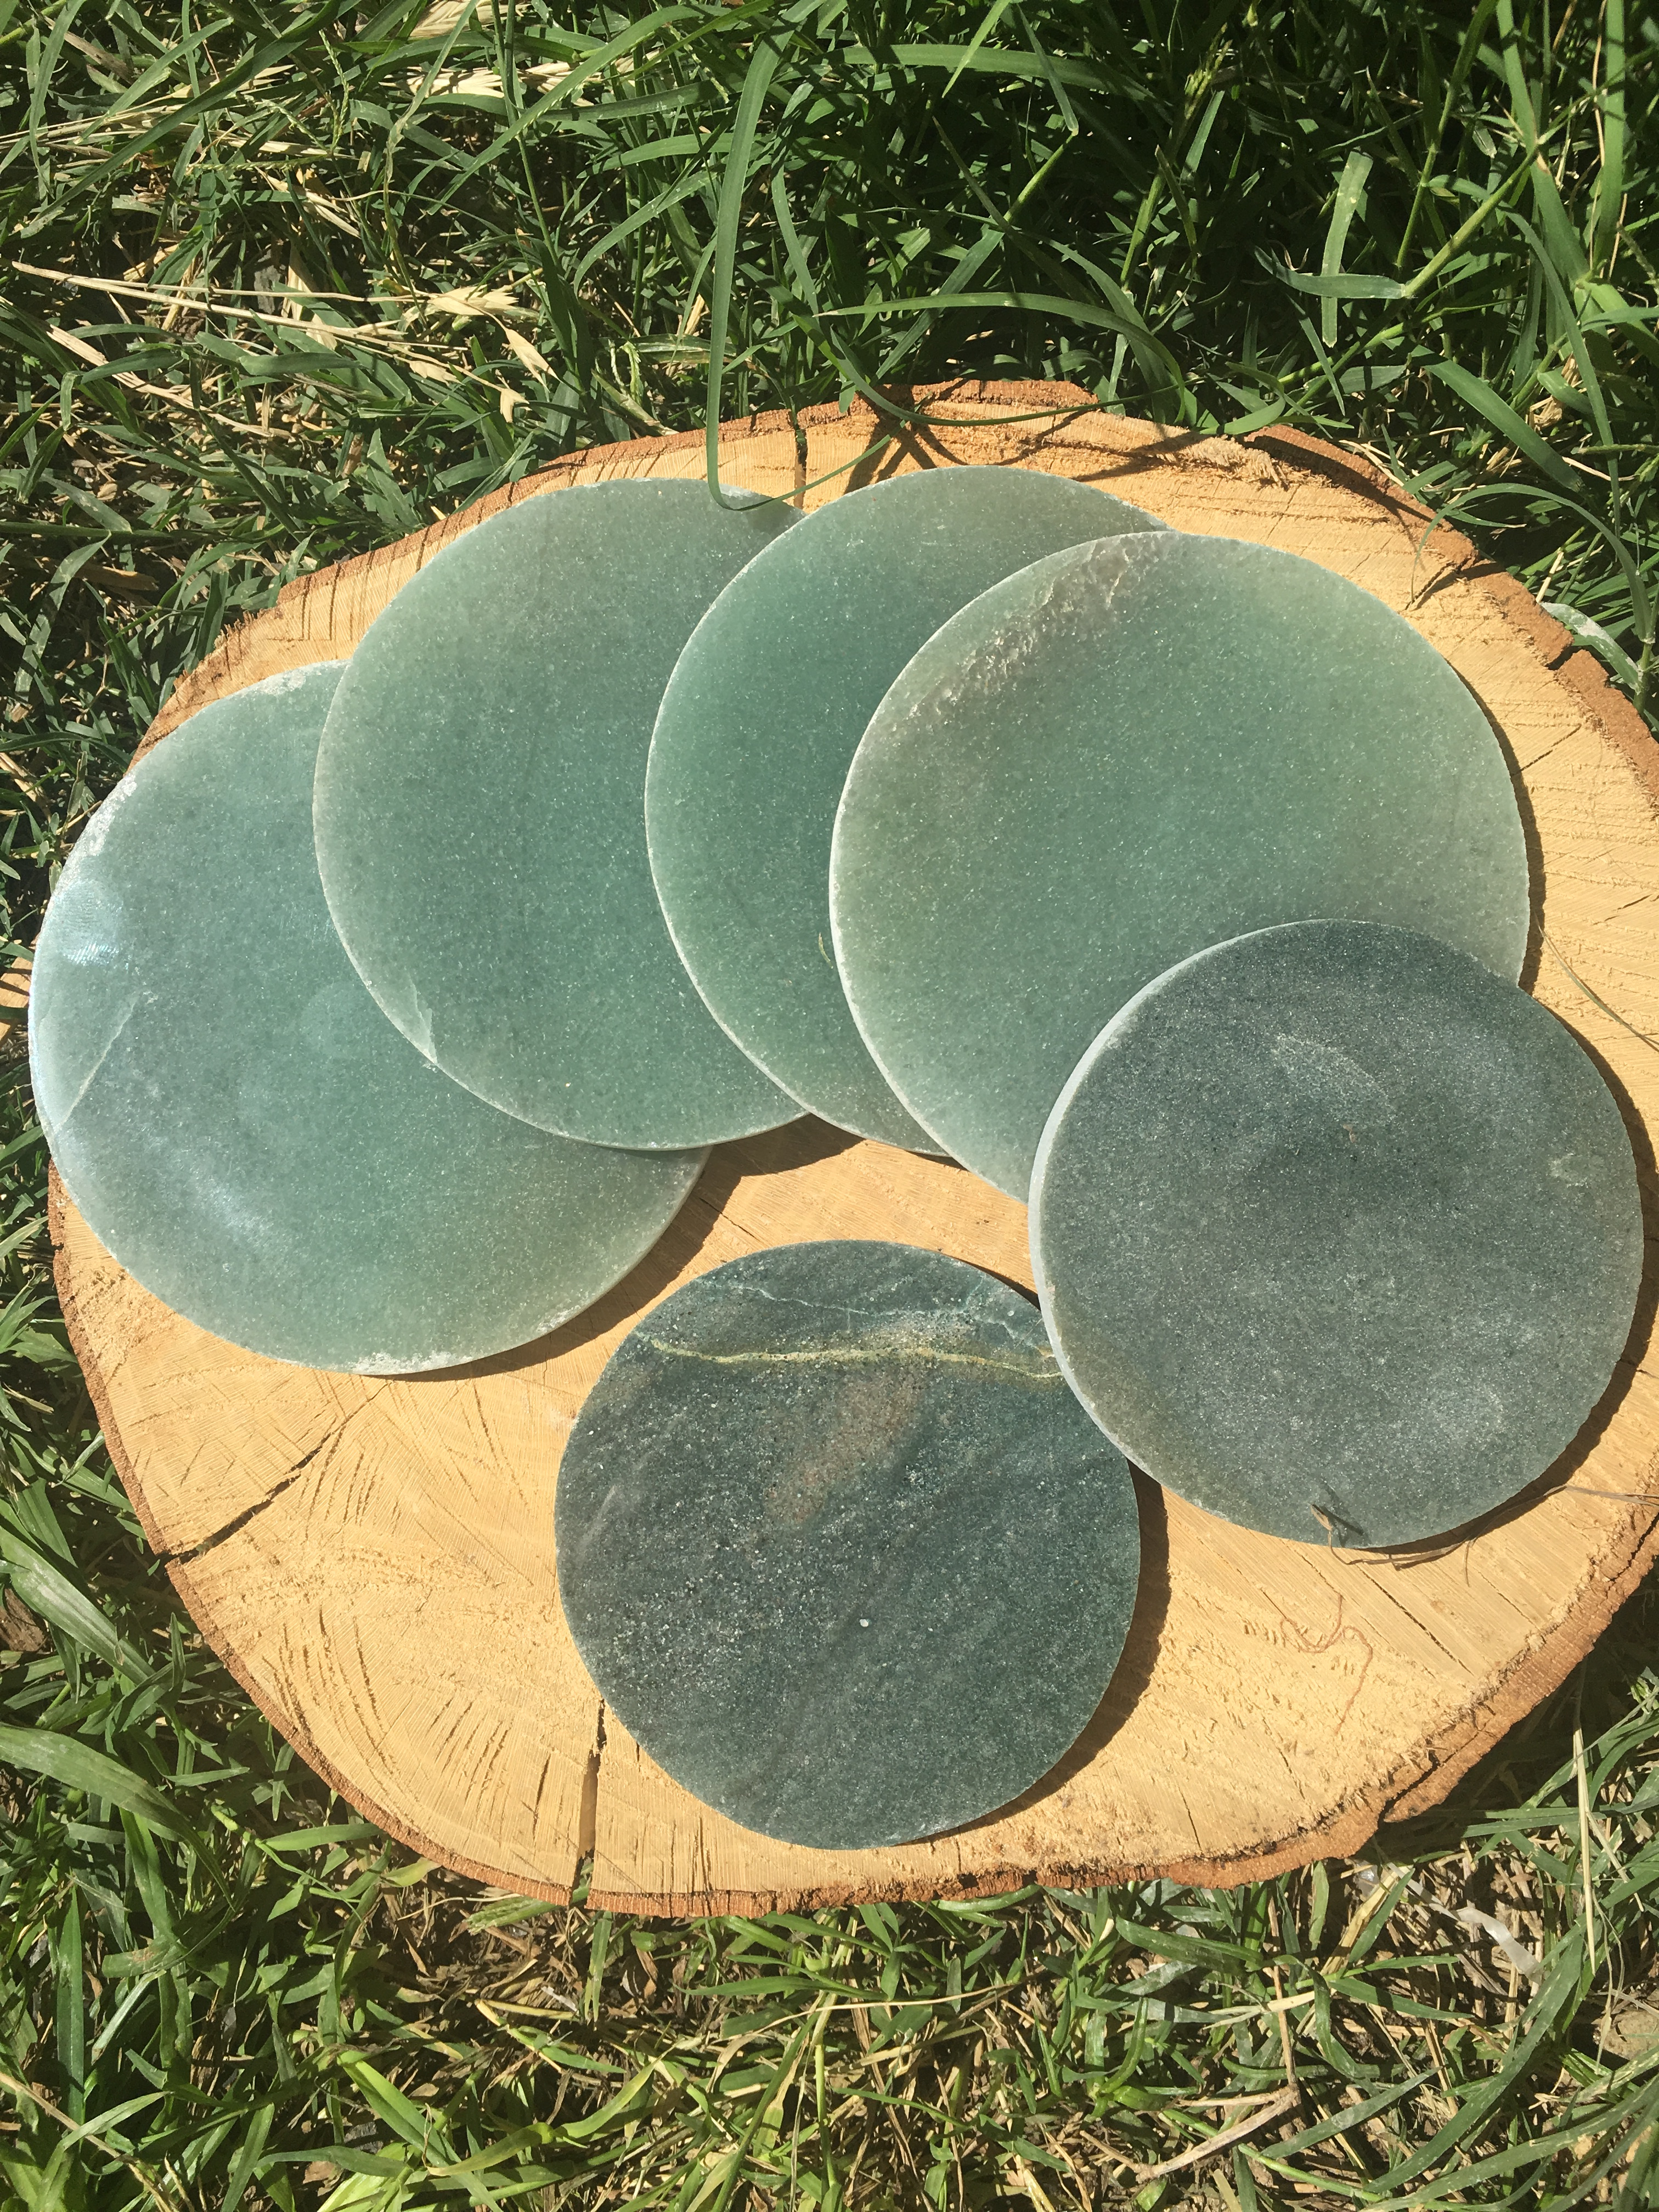 Stones from Uruguay - Green Aventurine Drink  Coasters